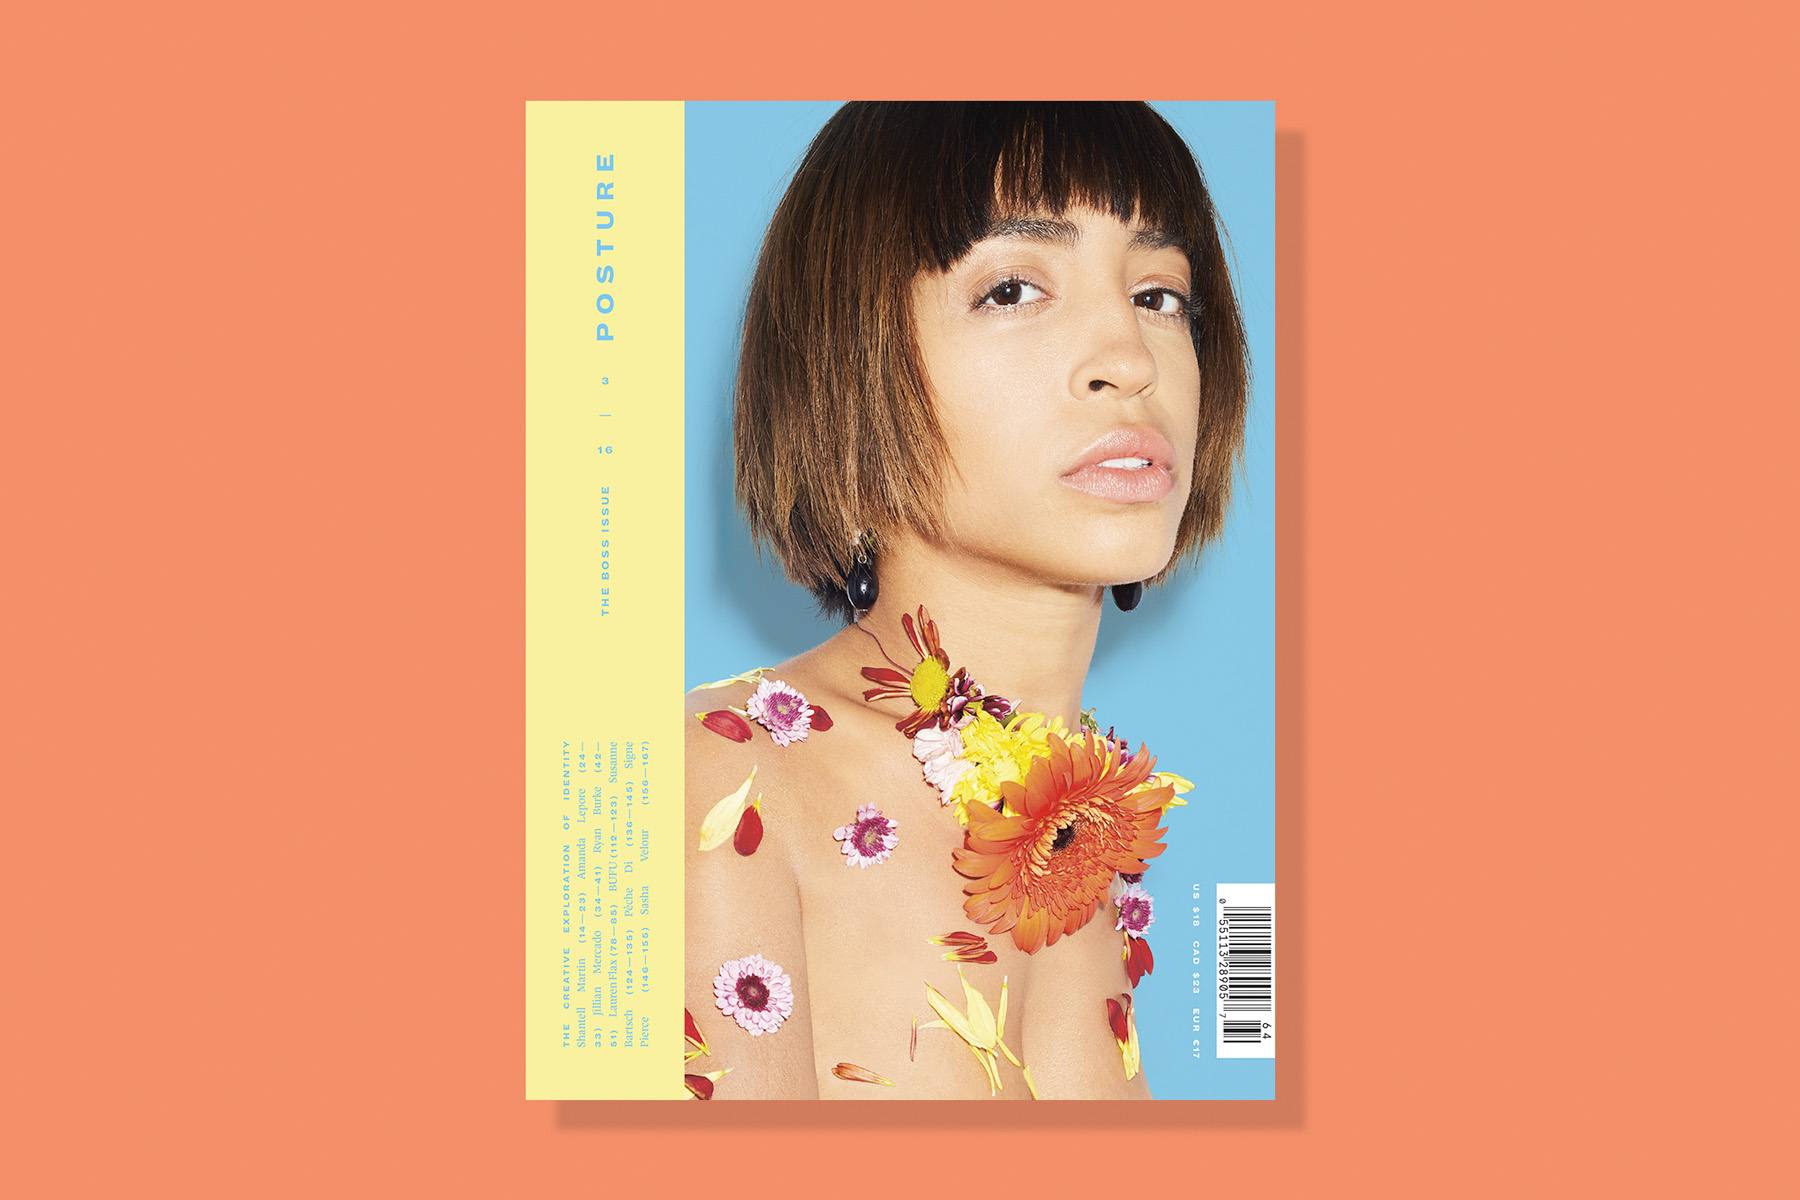 The newly redesigned cover for issue three of Posture magazine